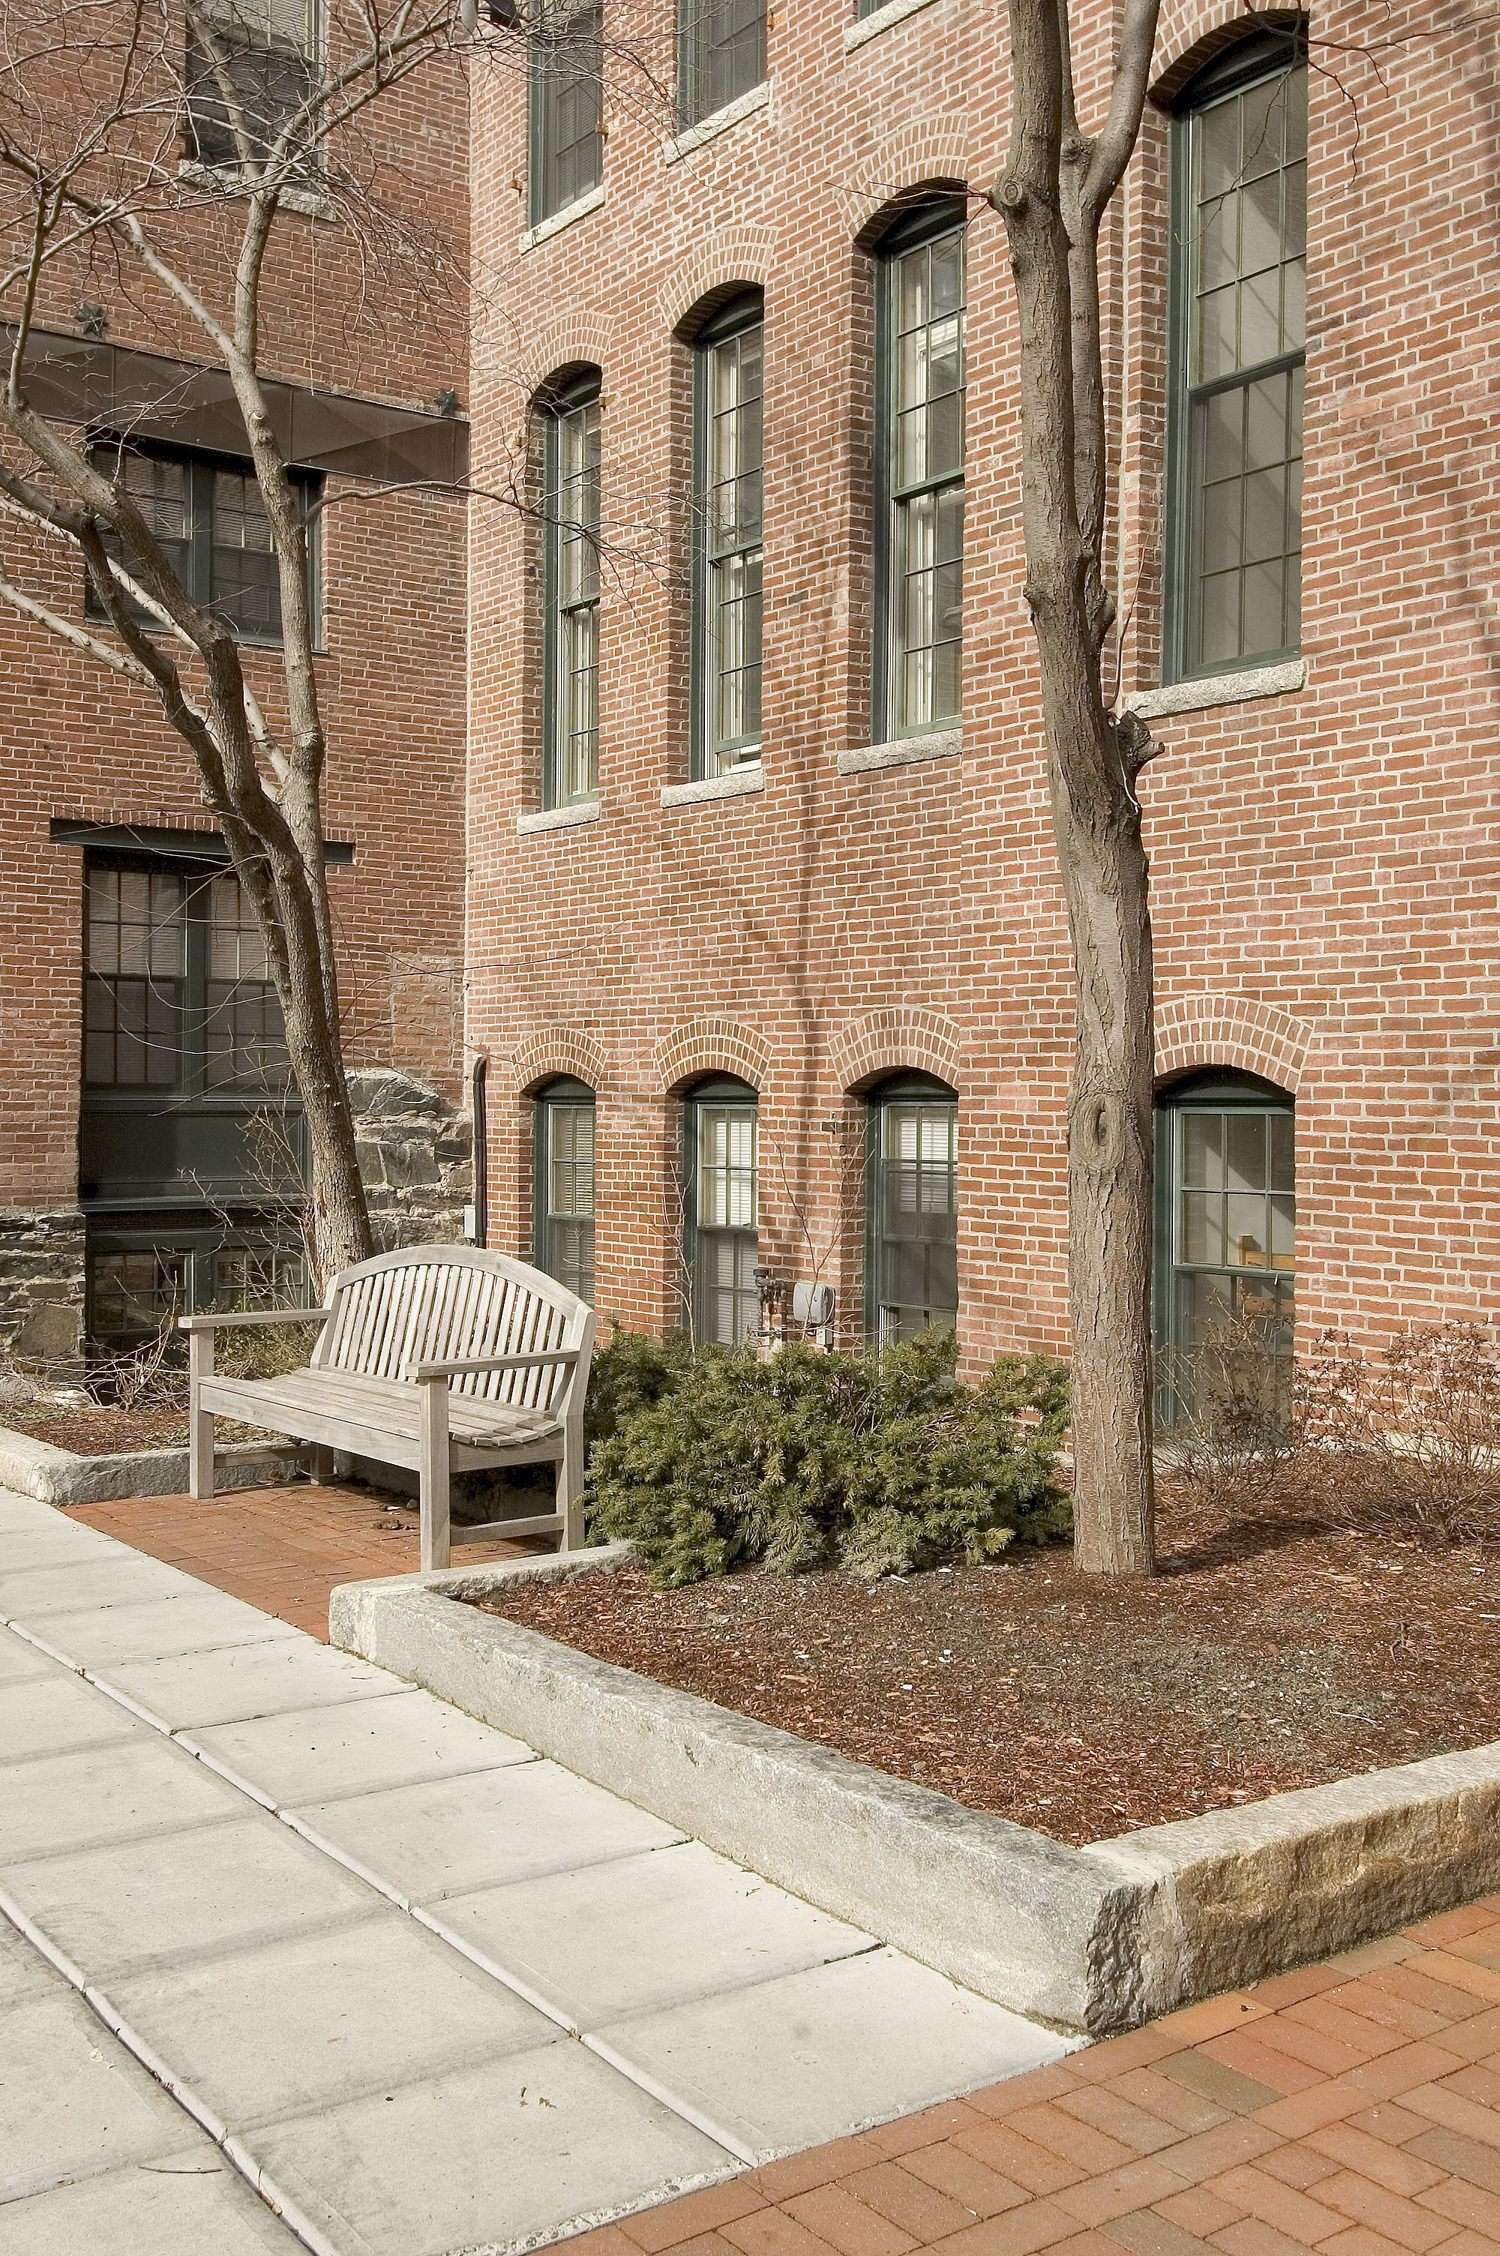 Trees that are planted next to a bench that is in front of a brick building in a courtyard area.